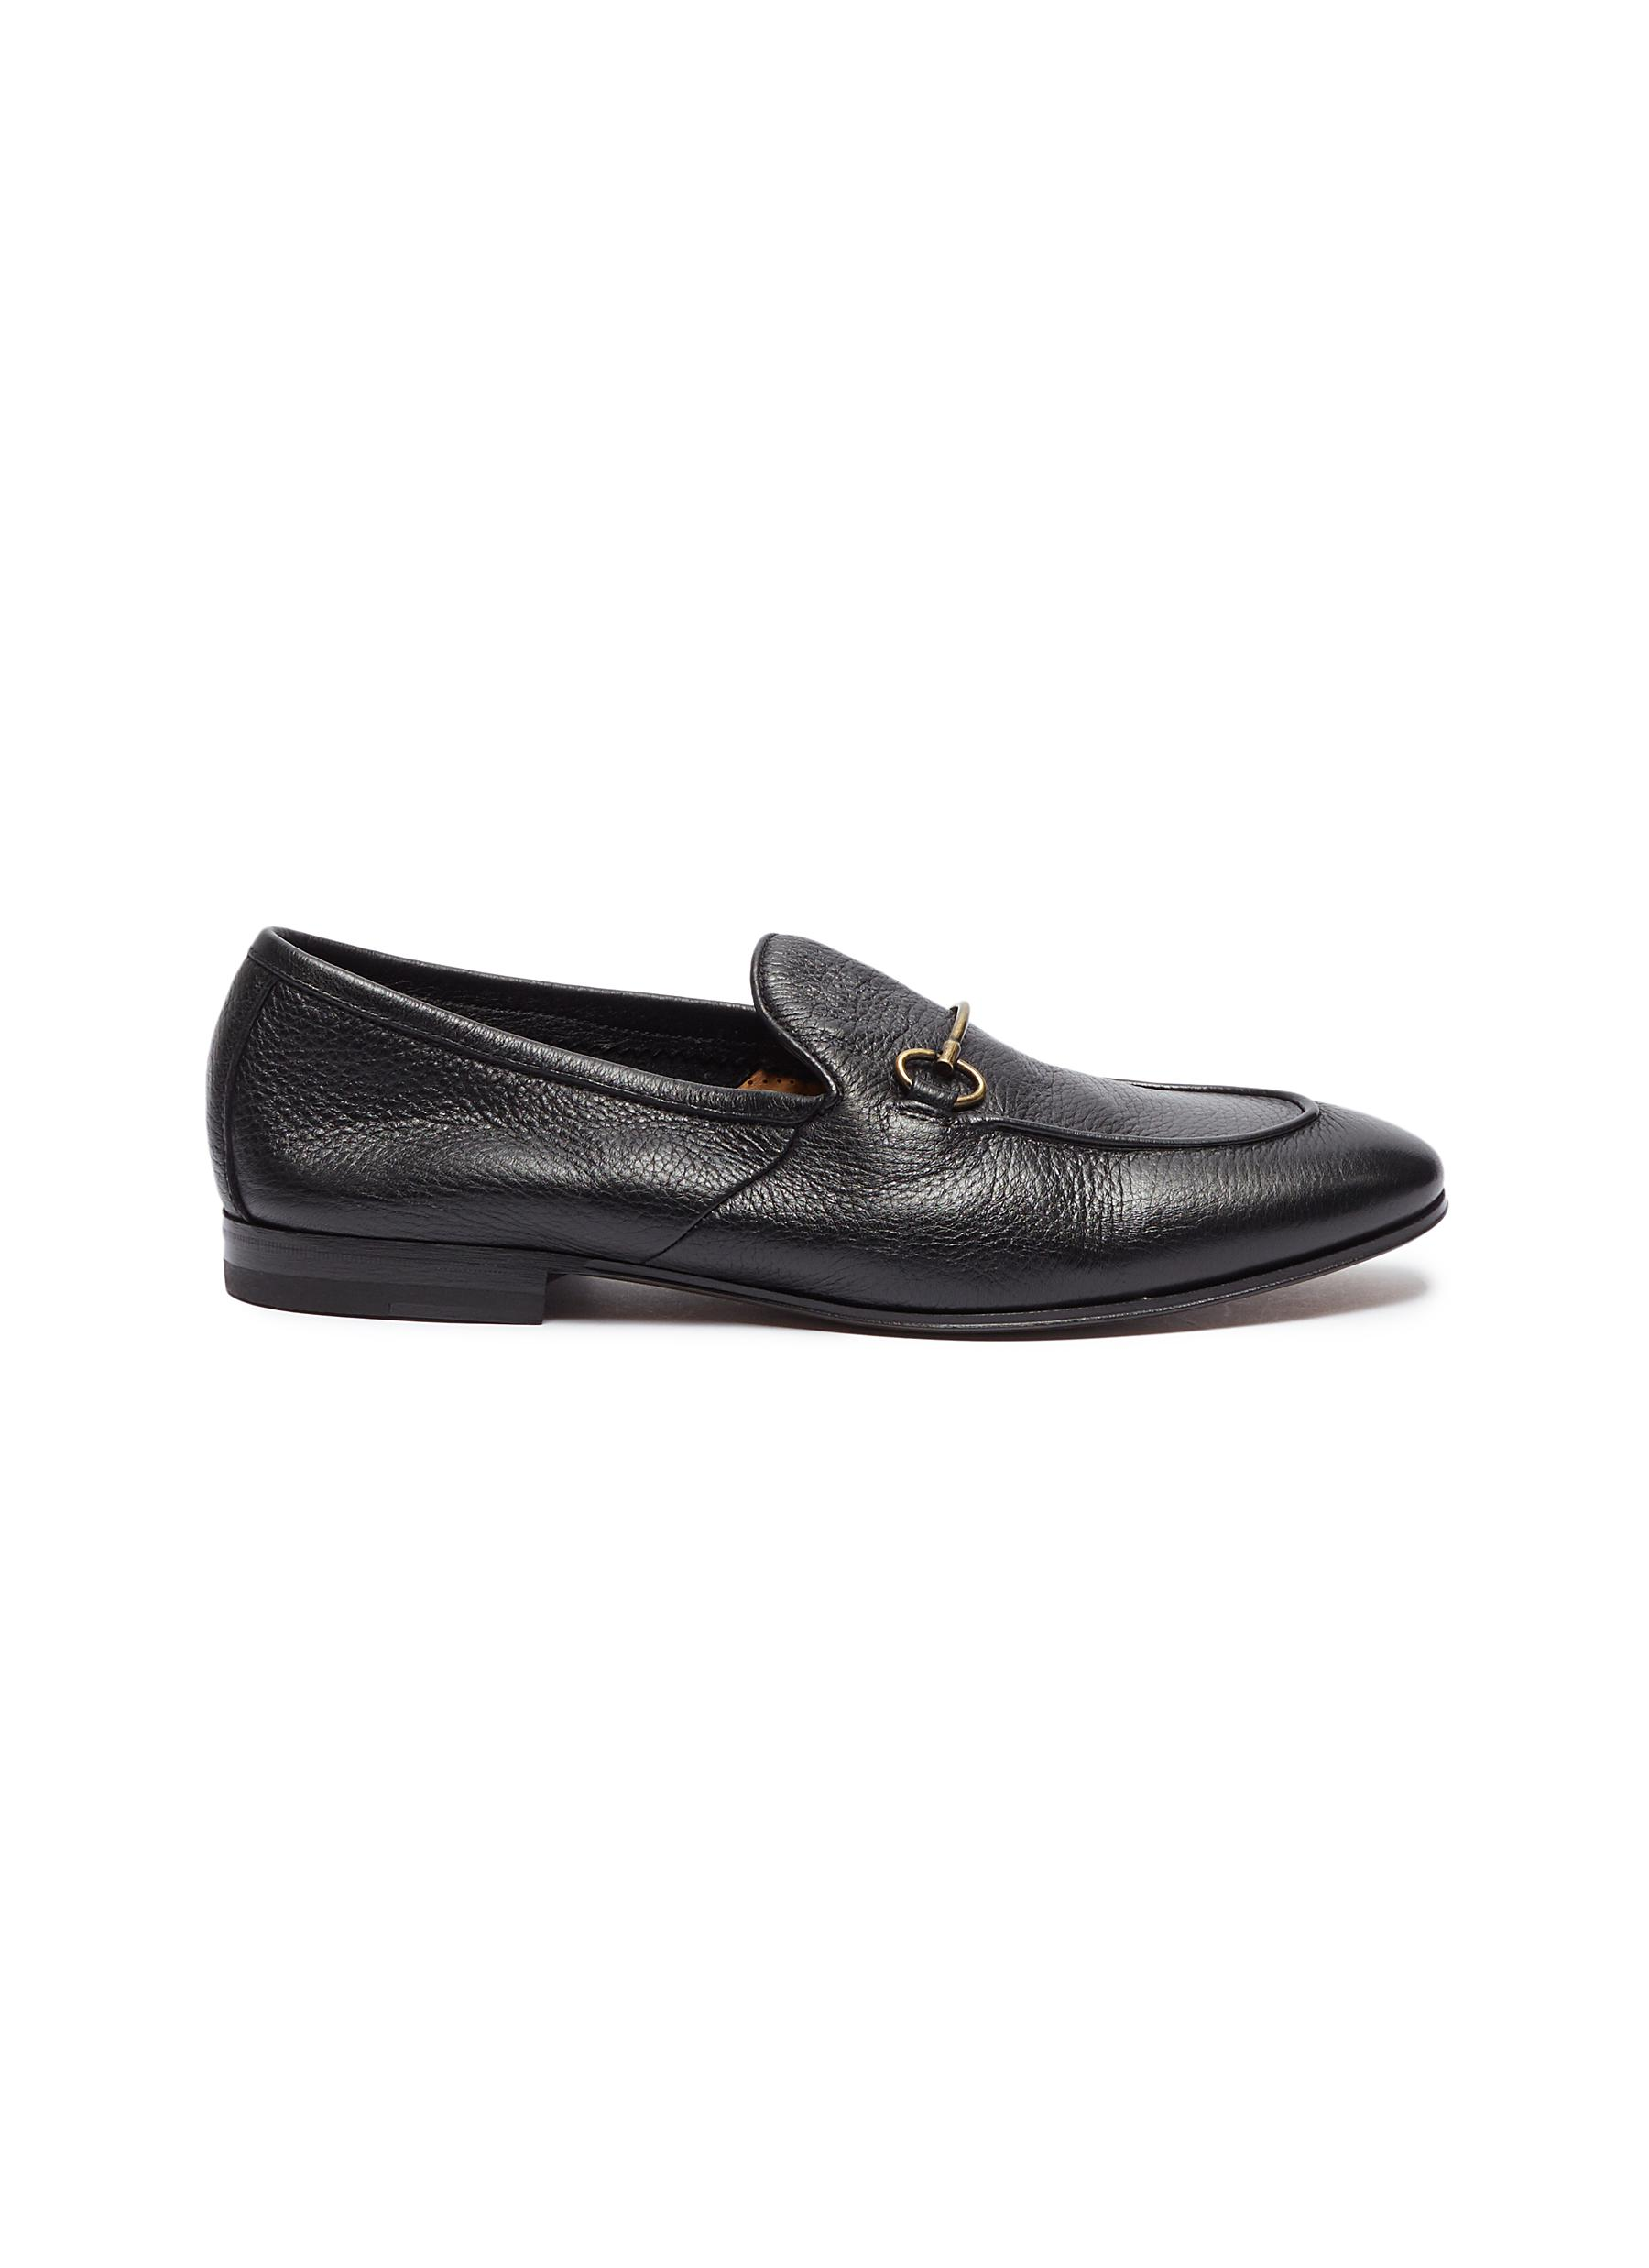 Horsebit leather loafers by Henderson